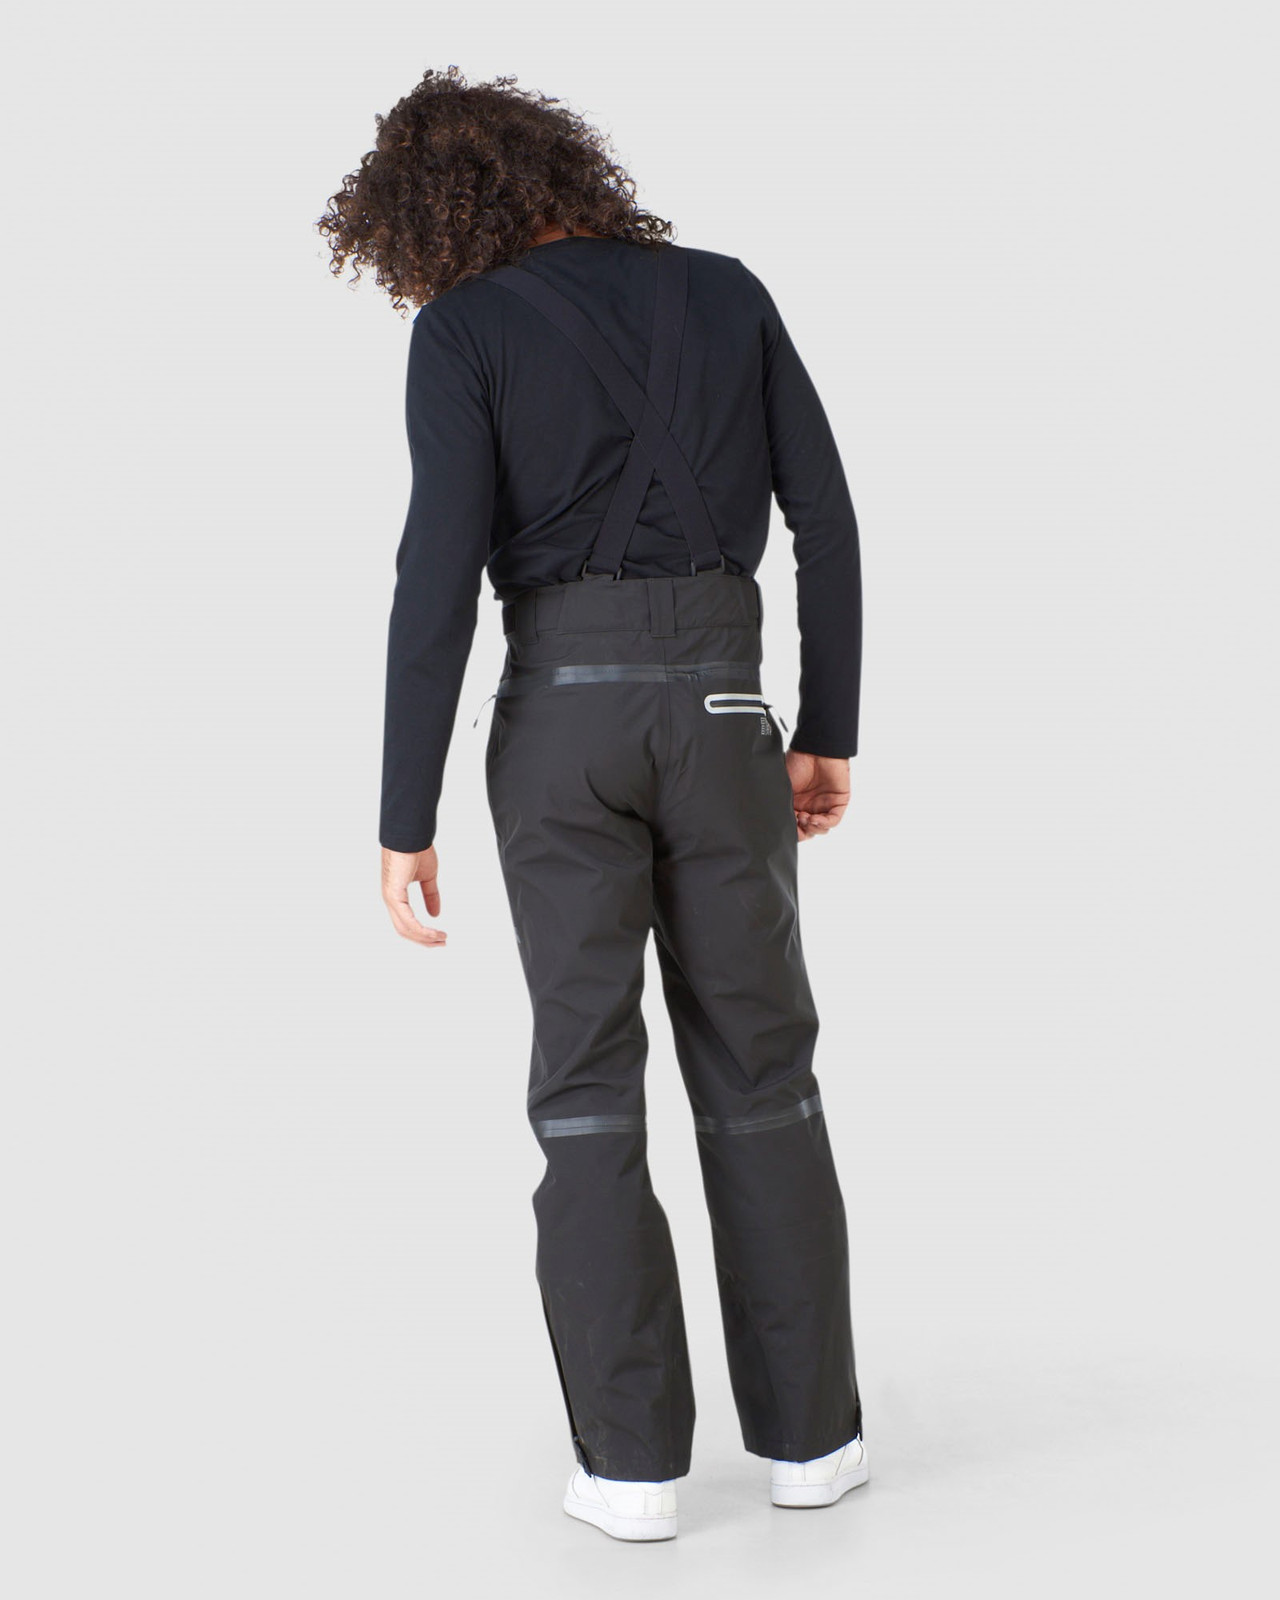 Superdry Mens EXPEDITION SHELL PANT Black Snow Pants 7